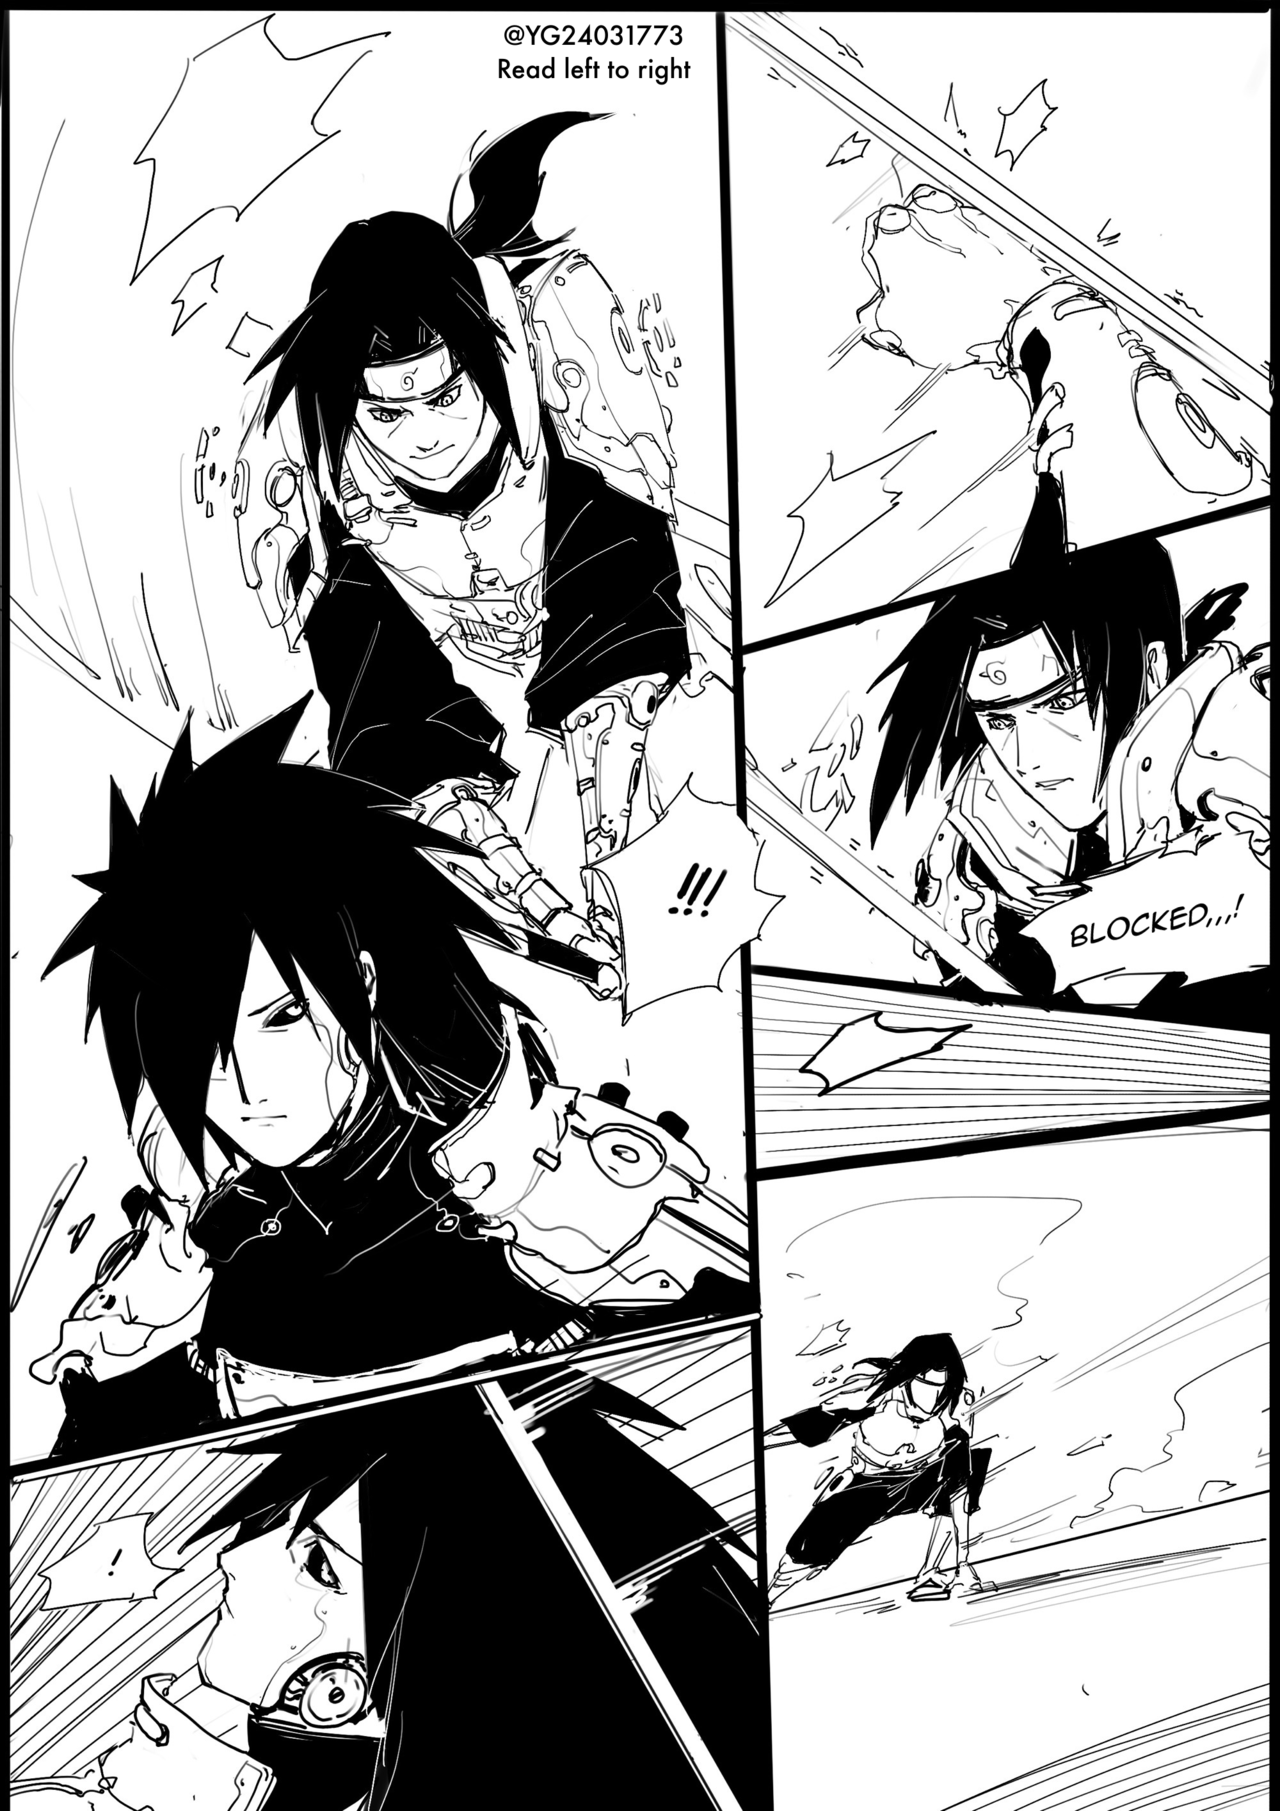 Pin by Vitória Maria on narutokun in 2020 Anime, How to